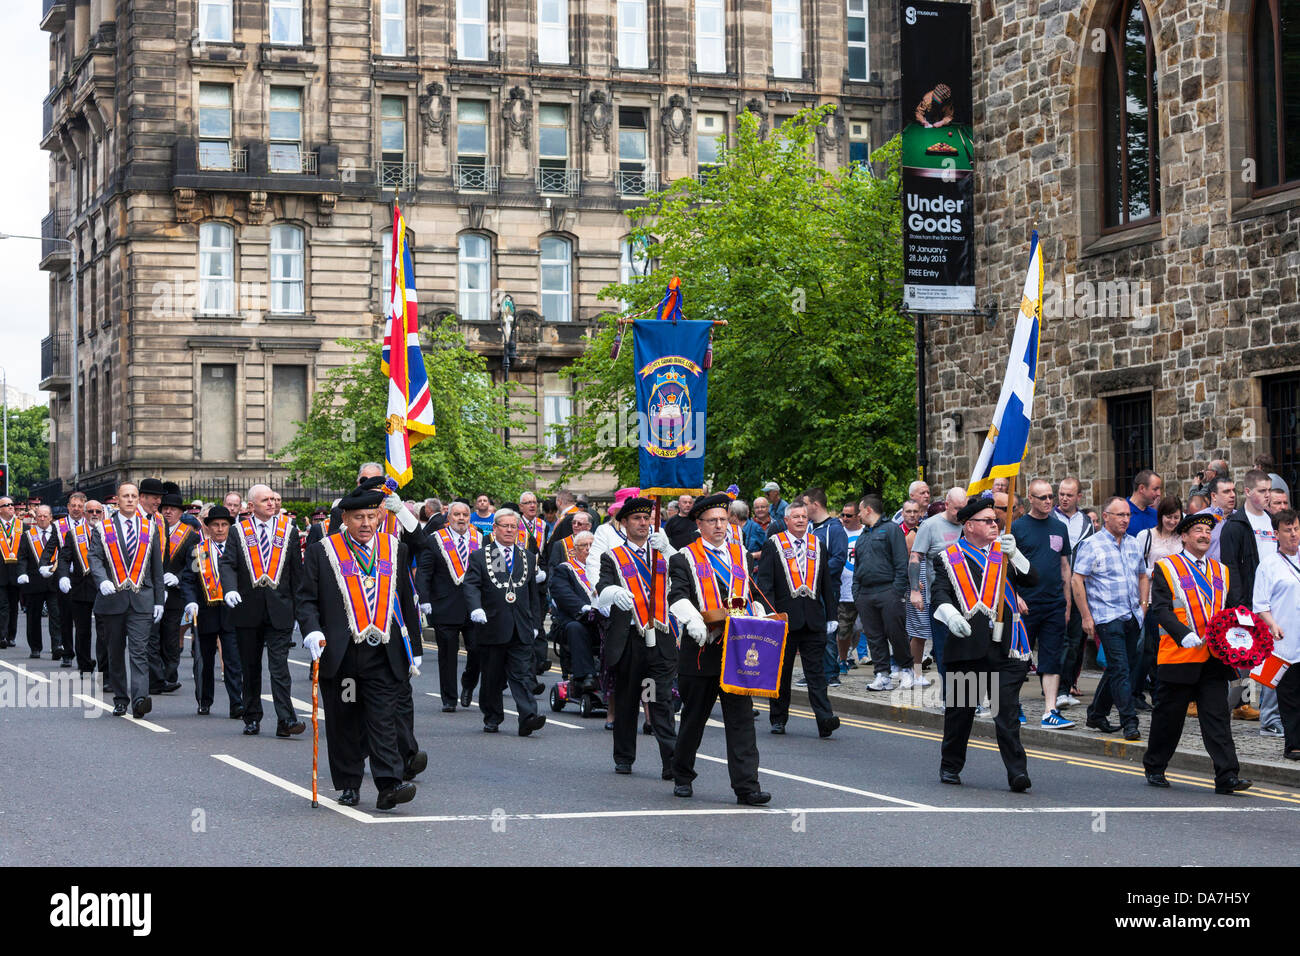 6th July 2013 Glasgow, Scotland, UK The annual Orange Walk [Loyal Orange Lodge Parade] took place through Glasgow - Stock Image